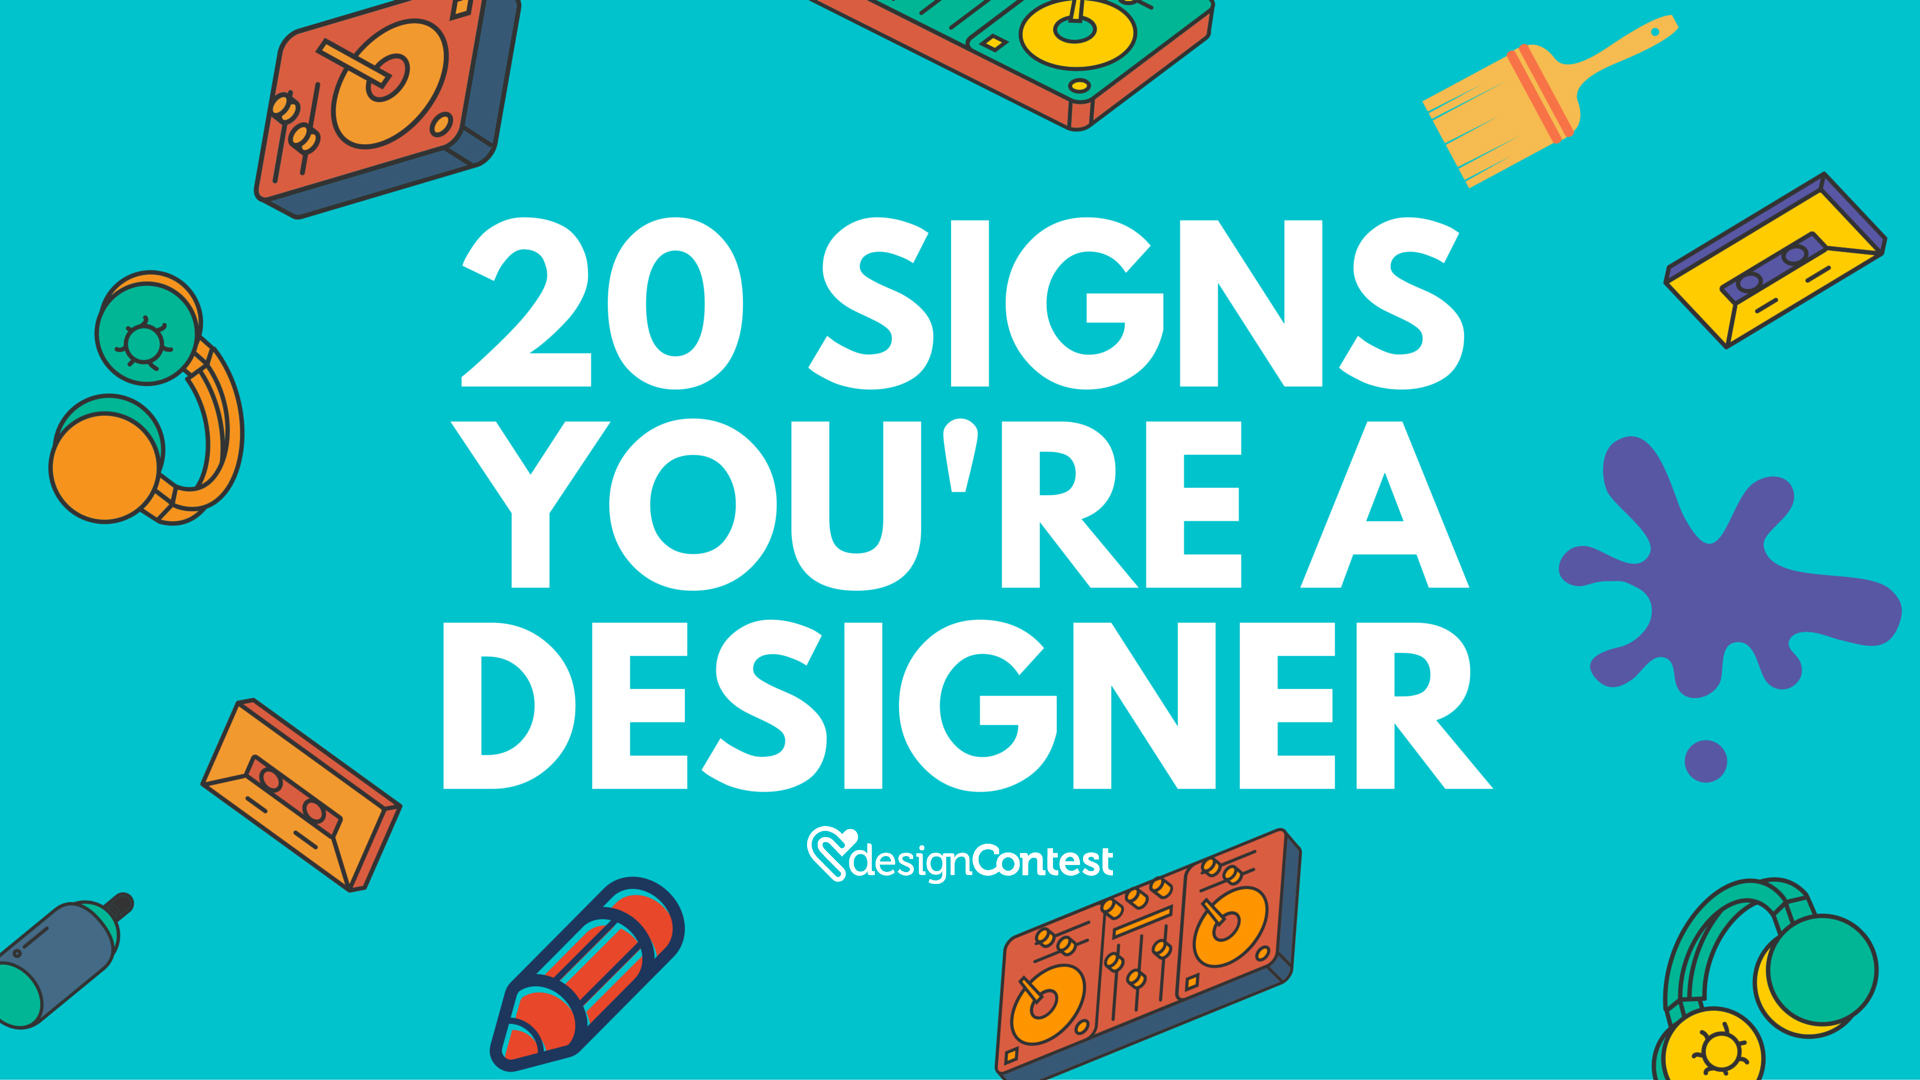 20 Signs You're a Designer